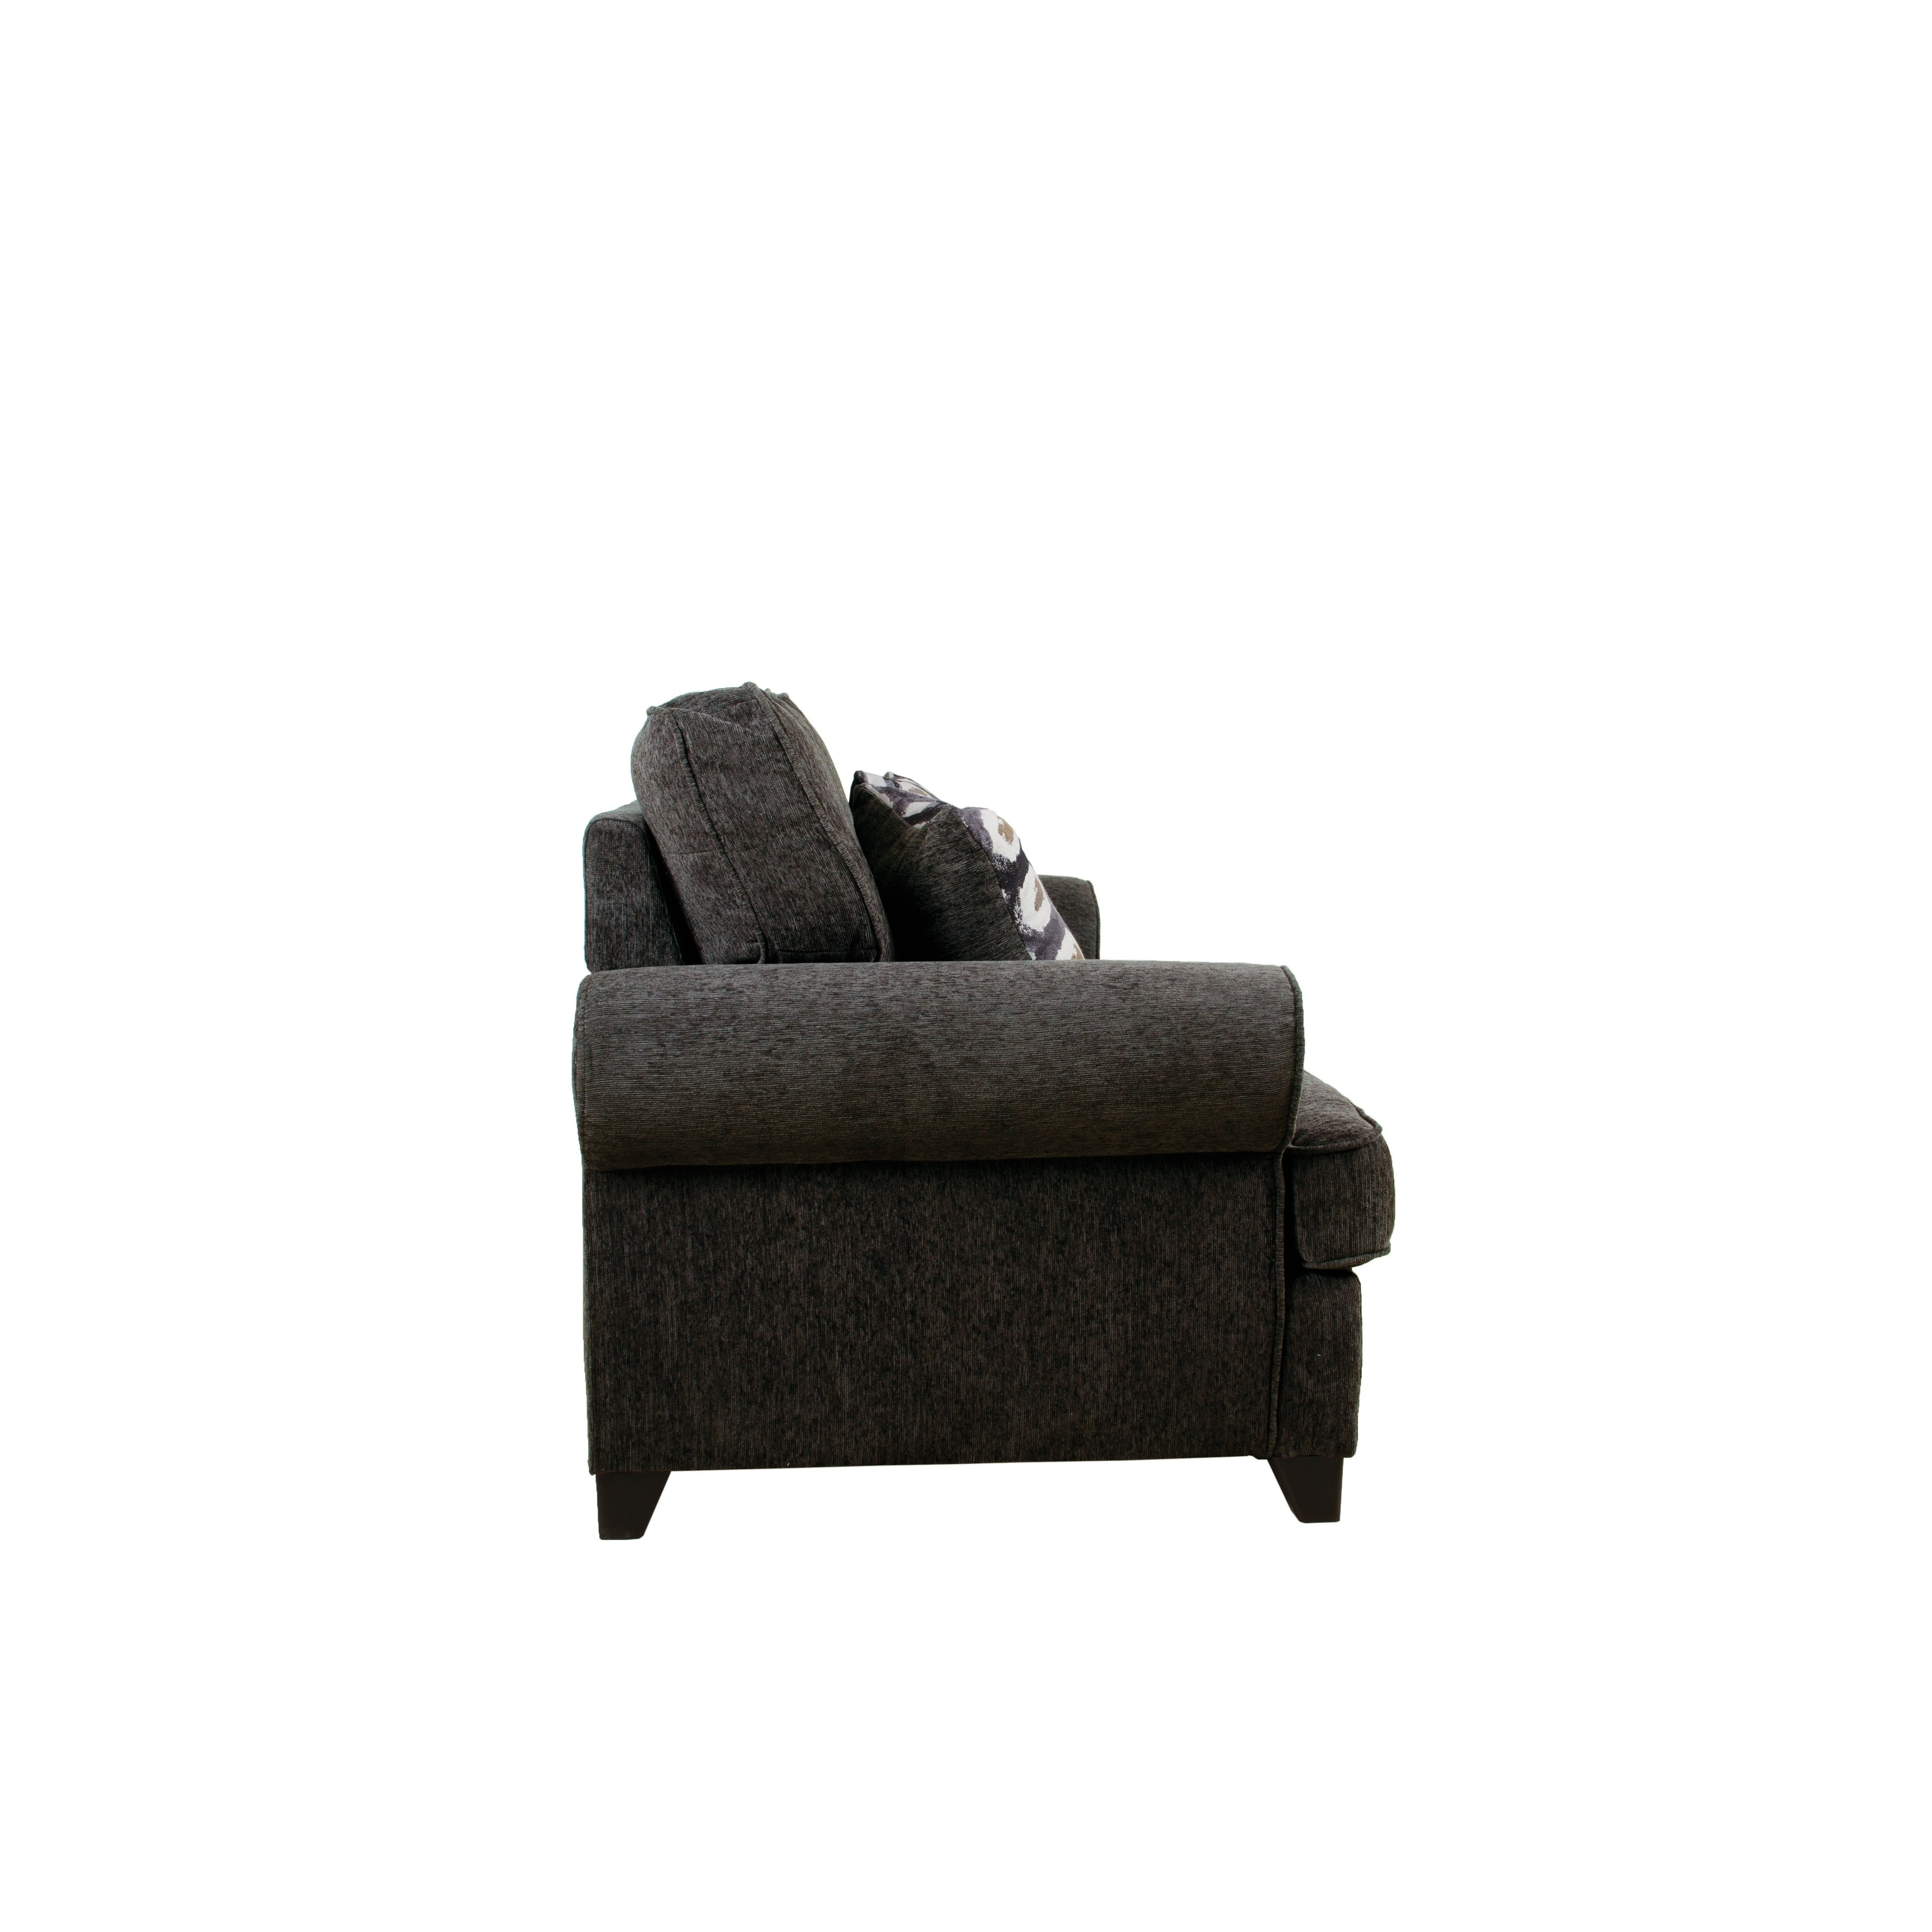 Amazing Acme Alessia Loveseat Sleeper With 2 Pillows In Dark Gray Chenille Pabps2019 Chair Design Images Pabps2019Com